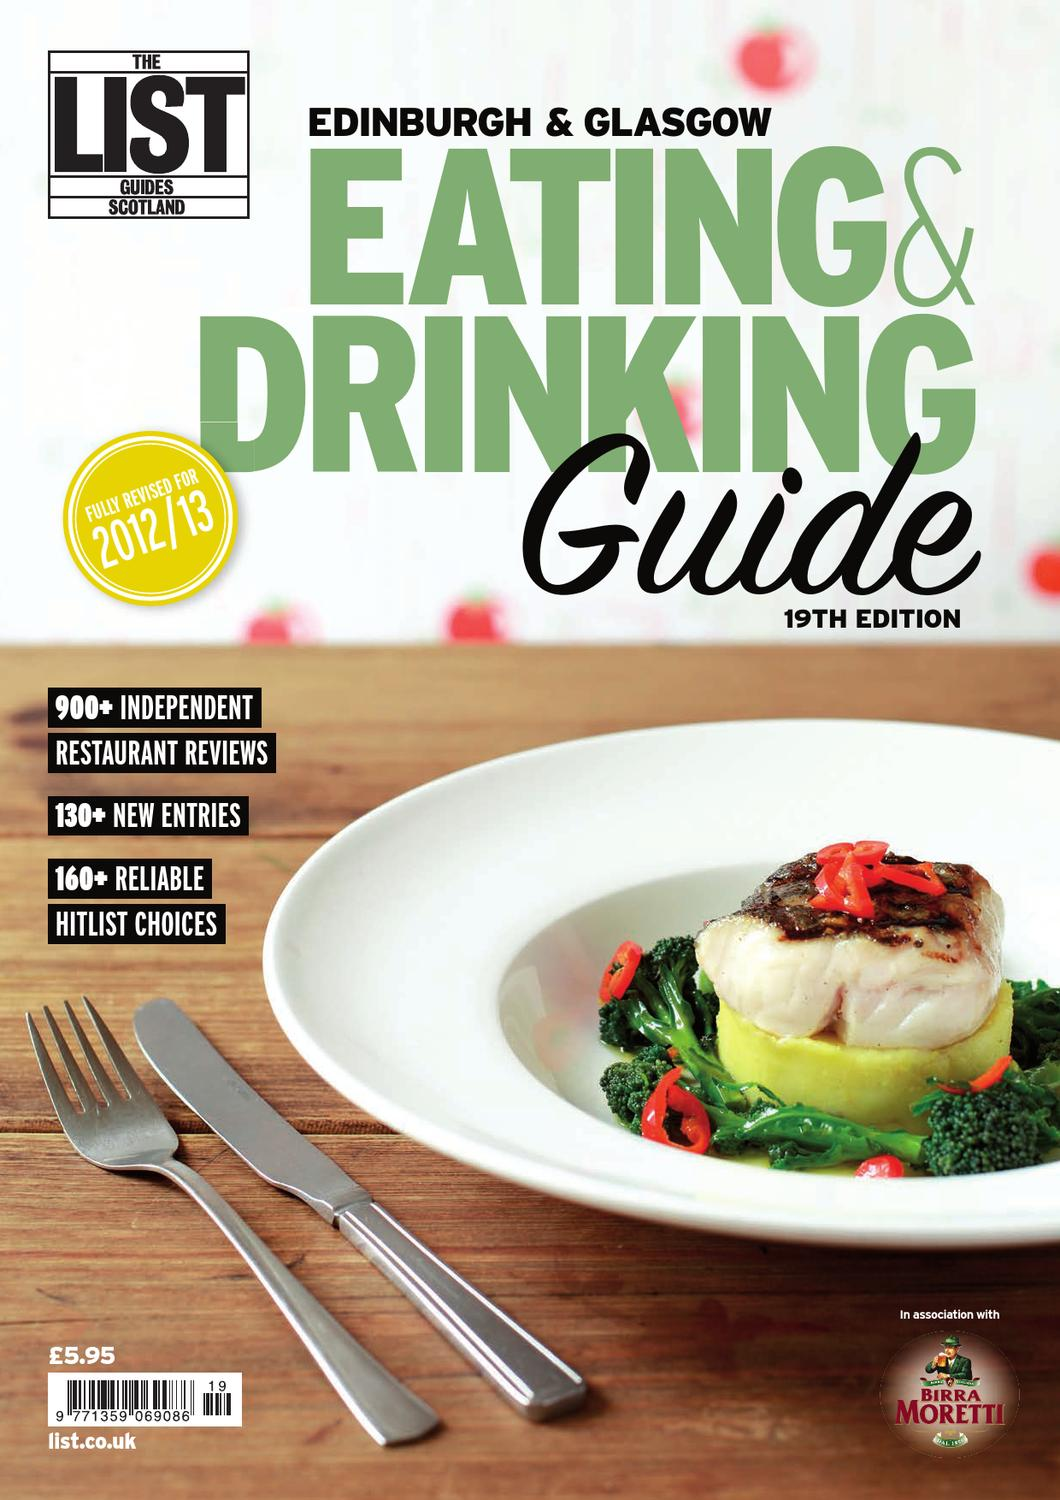 Cucina Antica Tomato Basil Uk Eating And Drinking Guide 2012 By The List Ltd Issuu